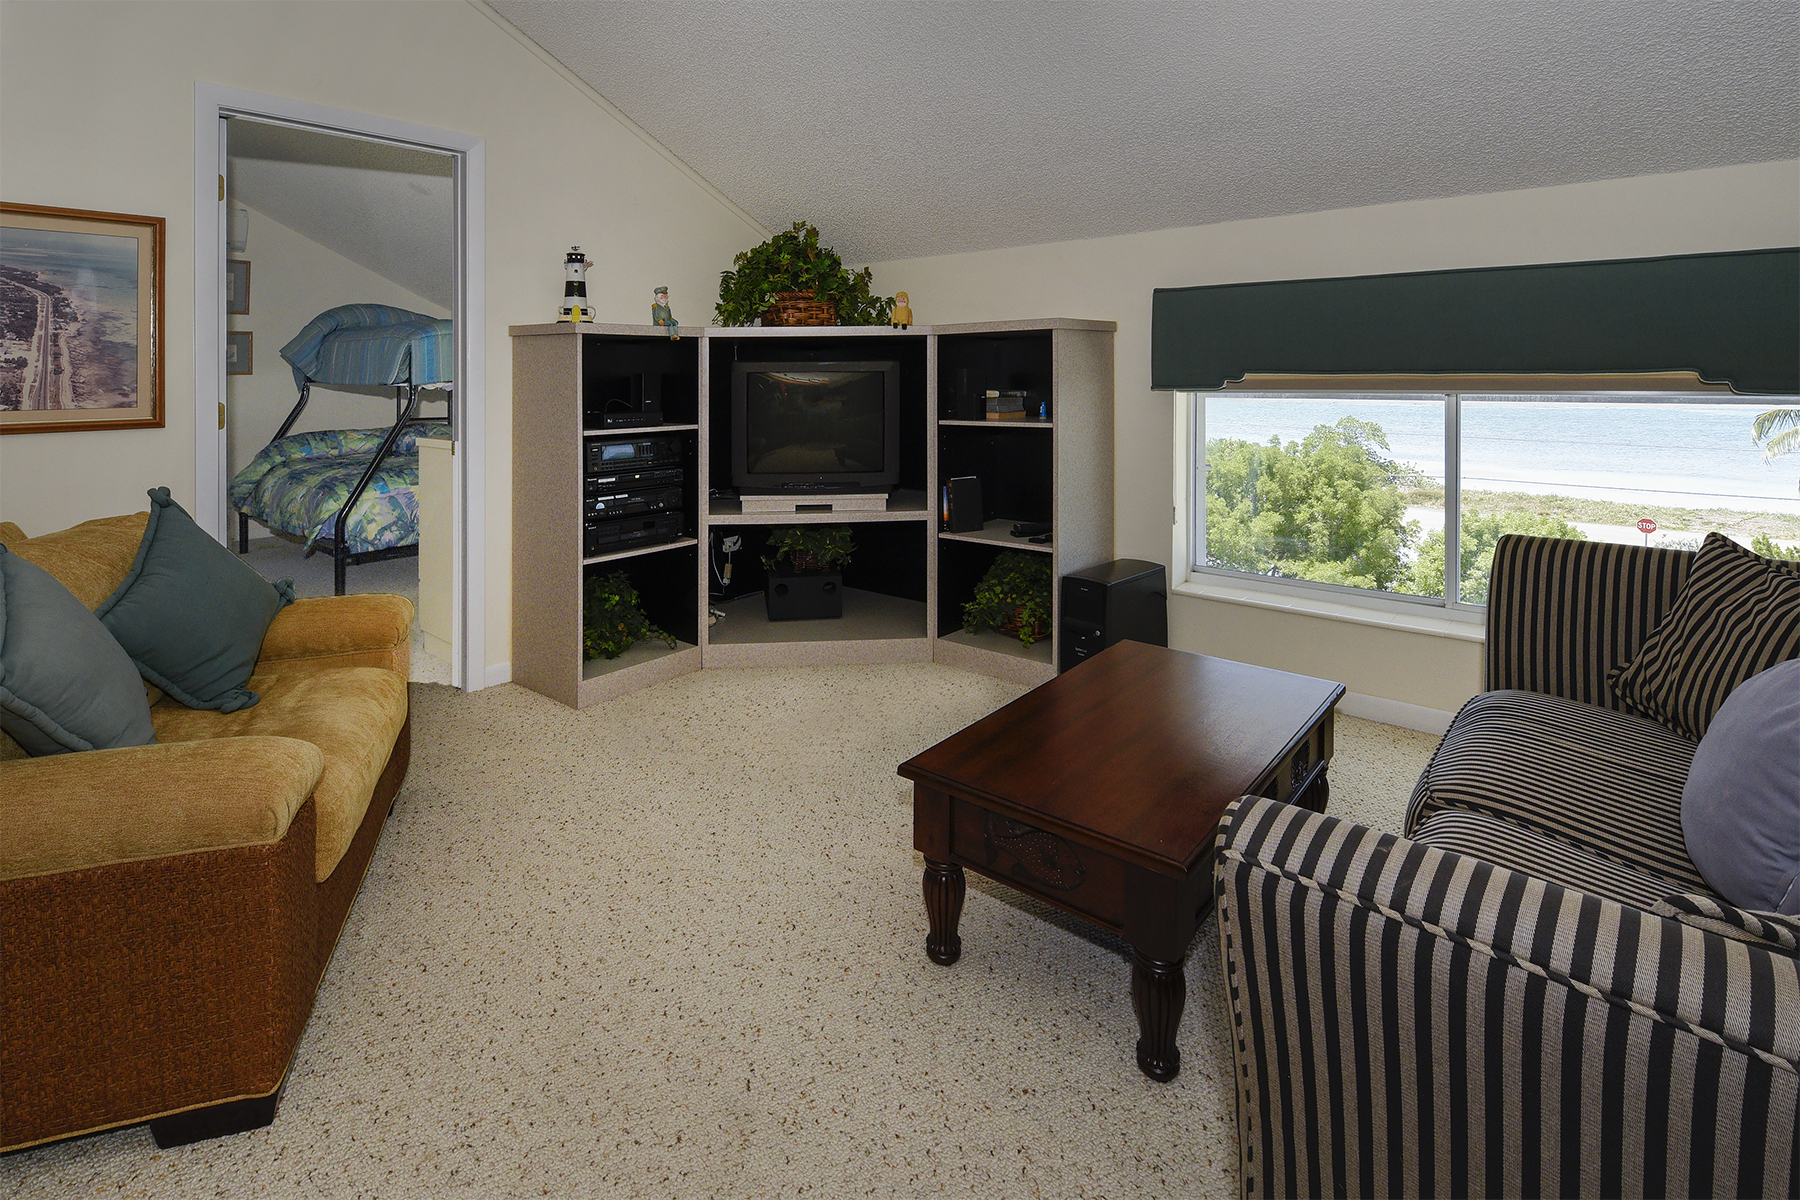 Additional photo for property listing at Desirable Sandglass Unit 74980 Overseas Highway #4 Islamorada, フロリダ 33036 アメリカ合衆国